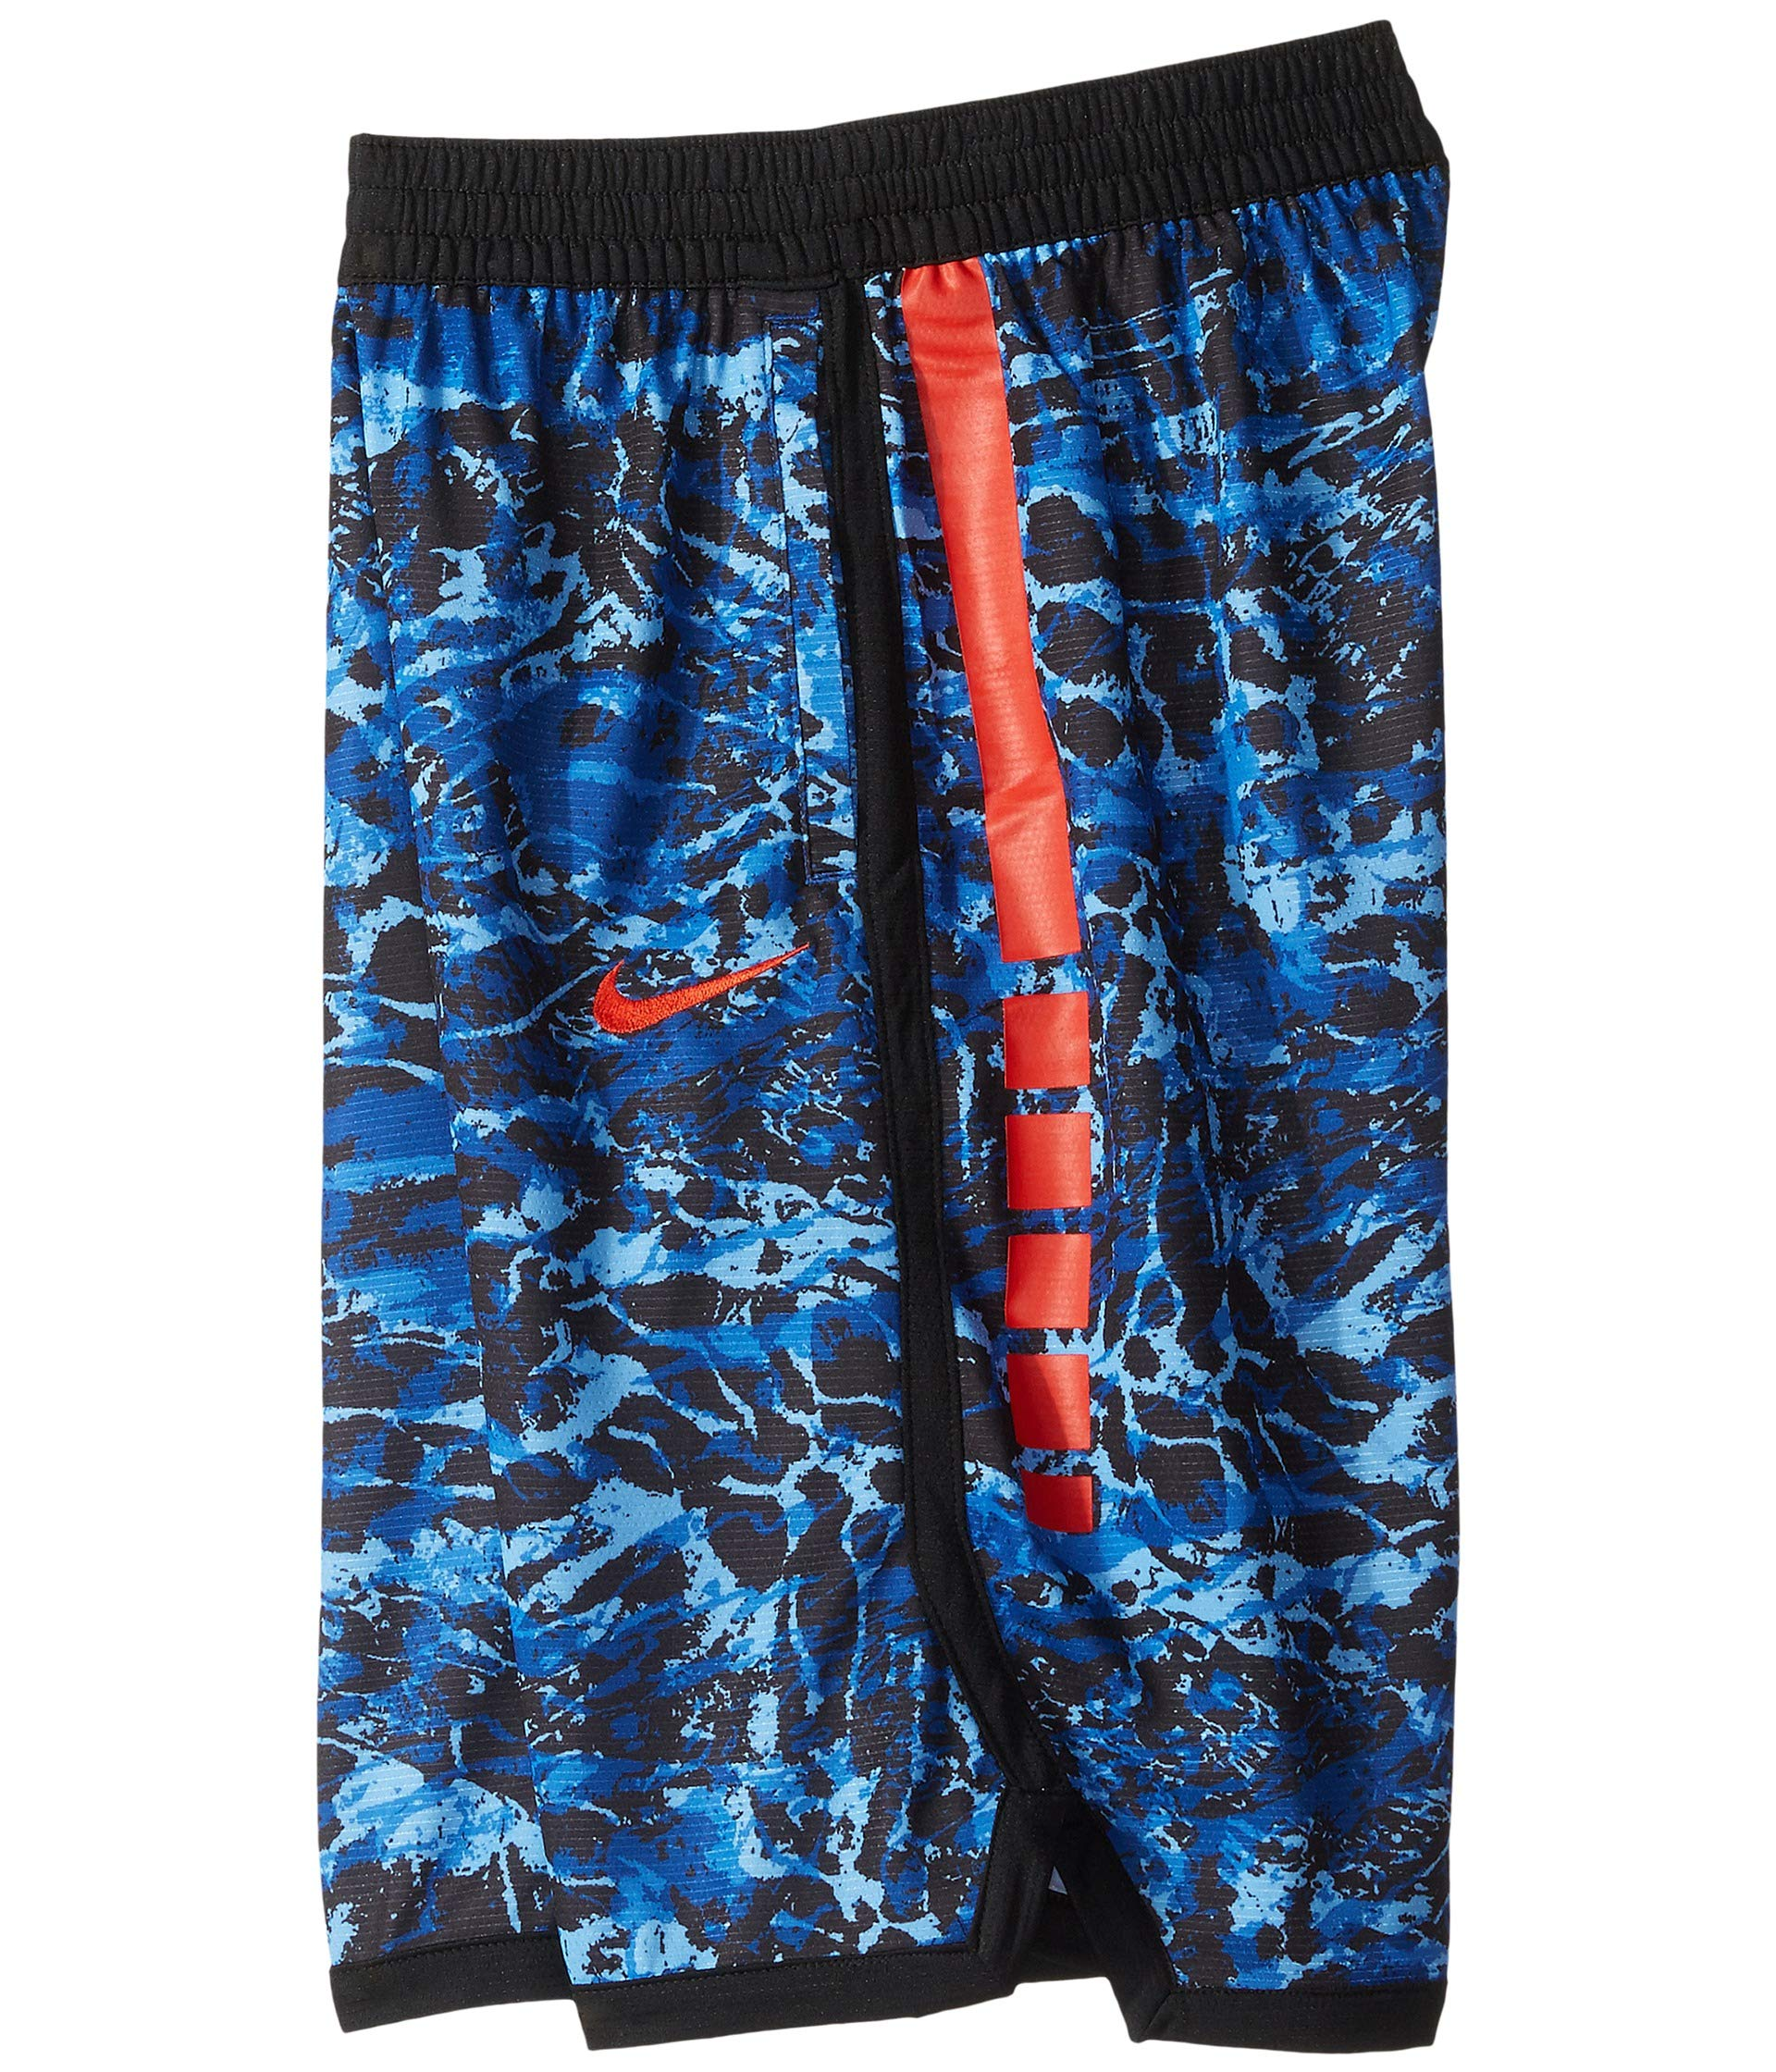 Nike Boy's Dri-FIT Elite Printed Basketball Shorts (Game Royal/Black, X-Large) by Nike